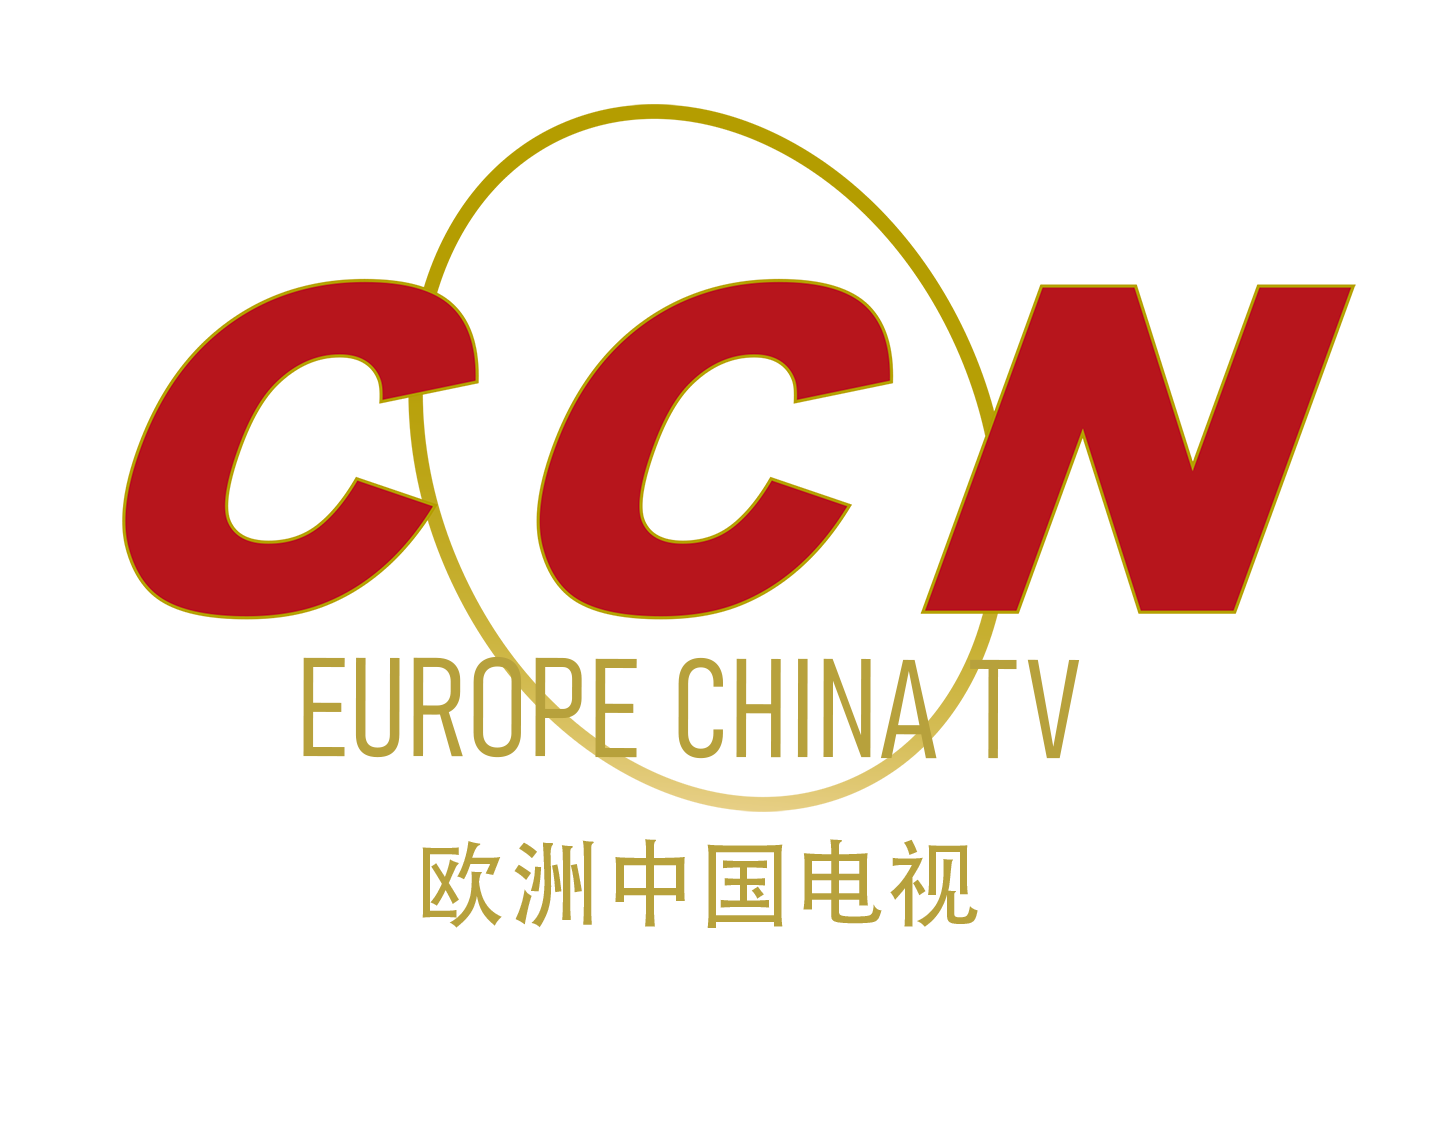 CCN Cyprus Chinese TV